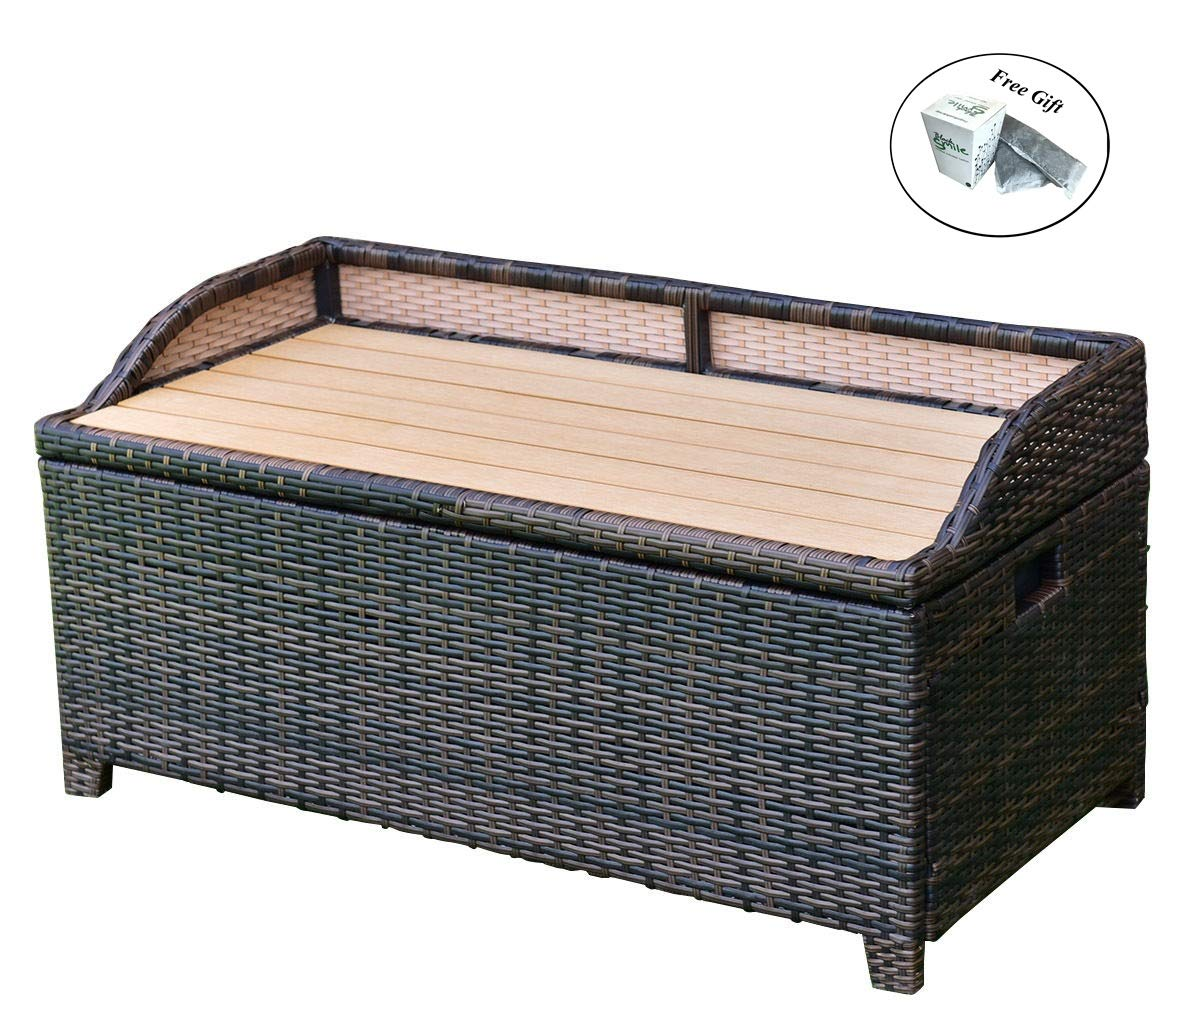 Eight24hours 50 Gallon Patio Rattan Storage Bench Container Box Wicker Chest Organizer Seat + FREE E-Book